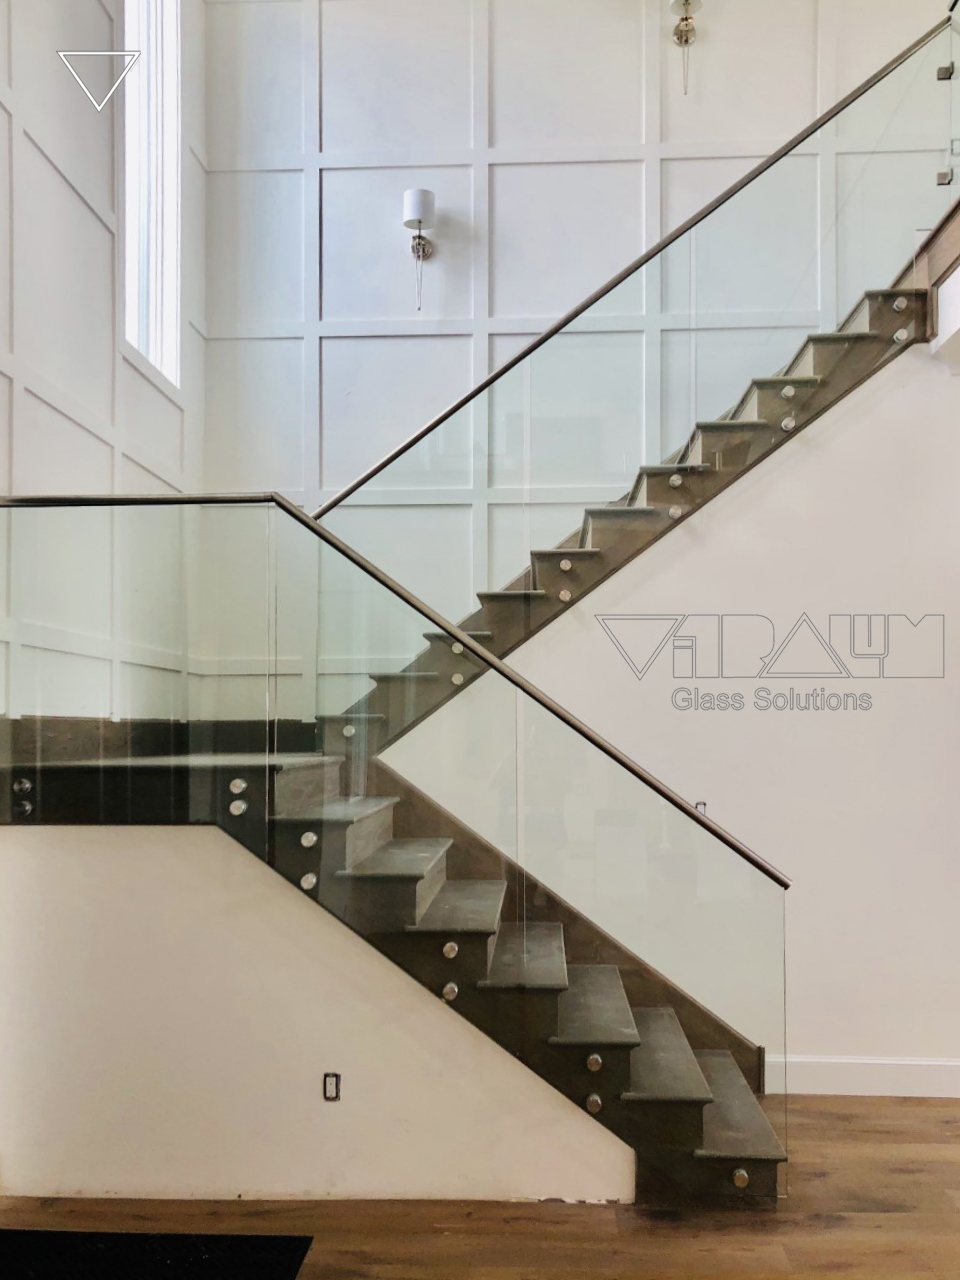 Frameless Glass Railings Orlando Vitralum Glass Solutions   Glass Balustrade Stairs Near Me   Railing Systems   Handrails   Wood   Floating Stairs   Tempered Glass Panels